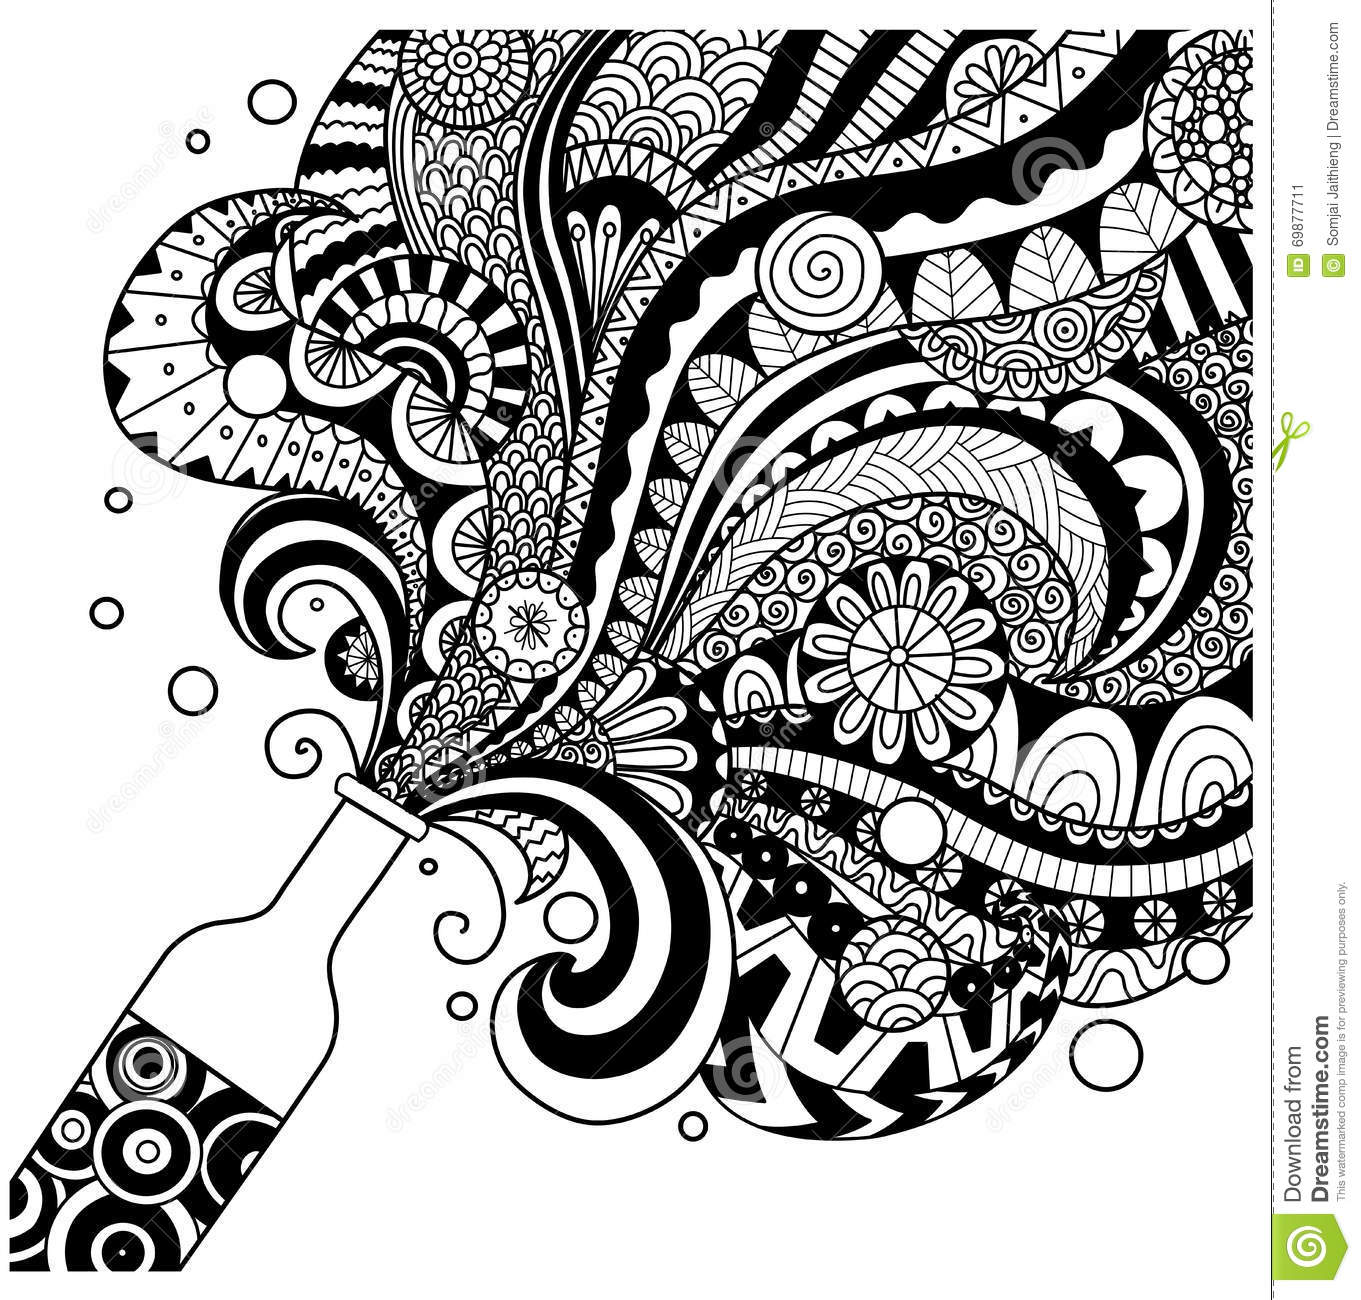 Line Art Media Design : Champagne bottle line art design for coloring book